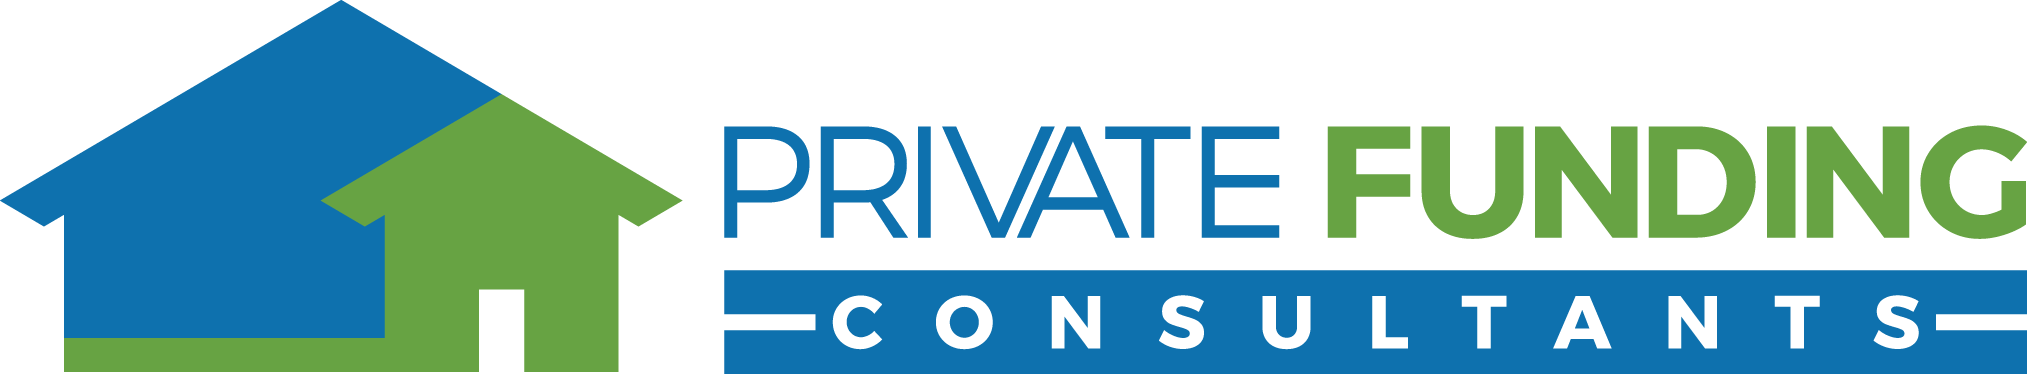 Private Funding Consultants